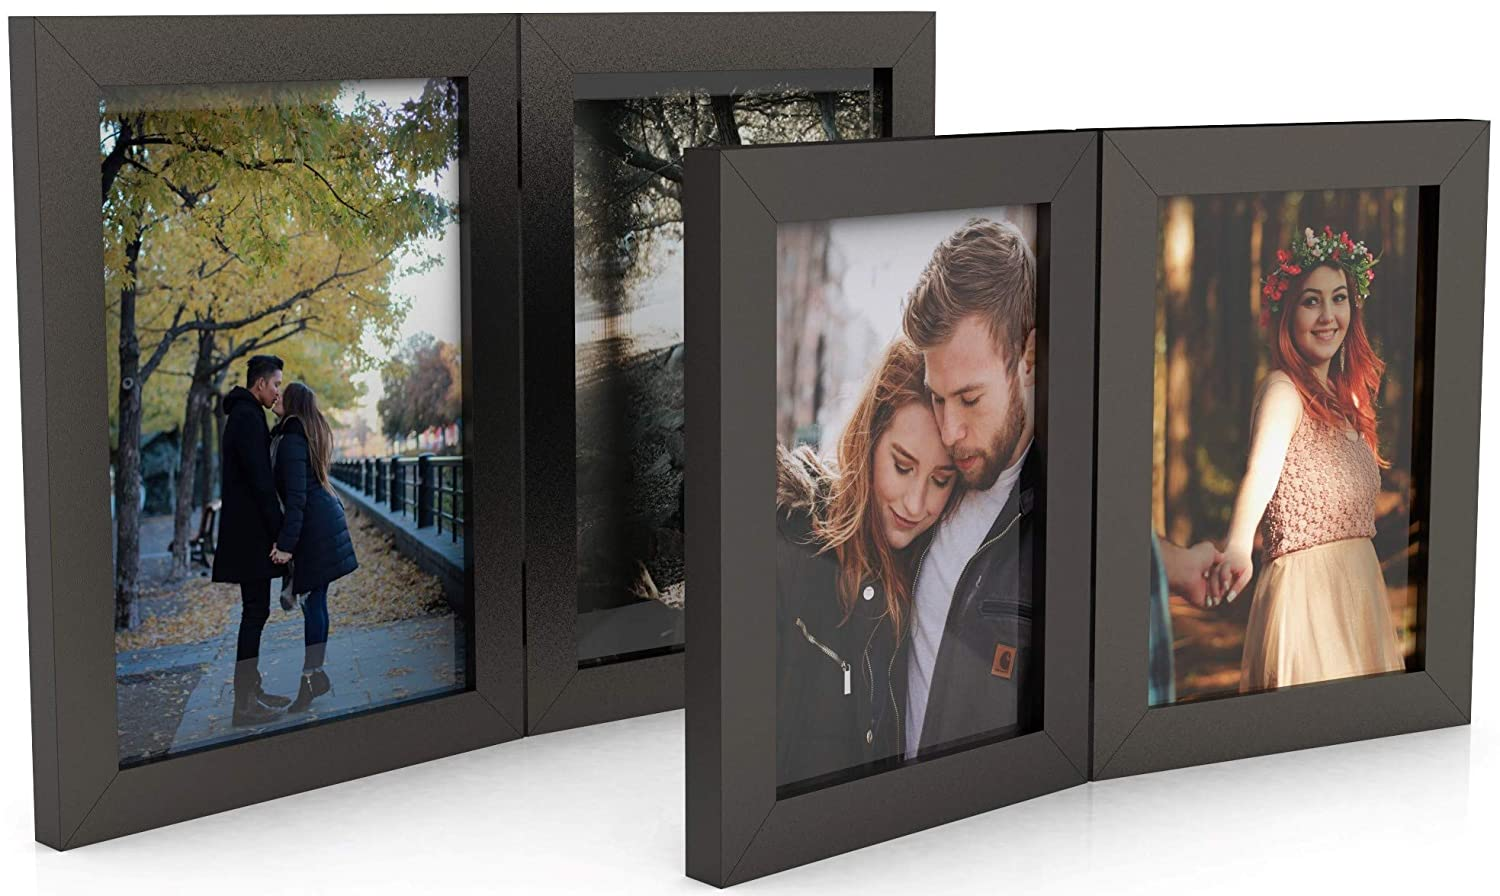 2 Pack Double Photo Frame Two Frame Sizes Timeless Design Hand Made Wooden Picture Frames for 4x6 and 5x7 Photos Smooth Finish Wood Frame Easily Display Multiple Photos Hinge Frame